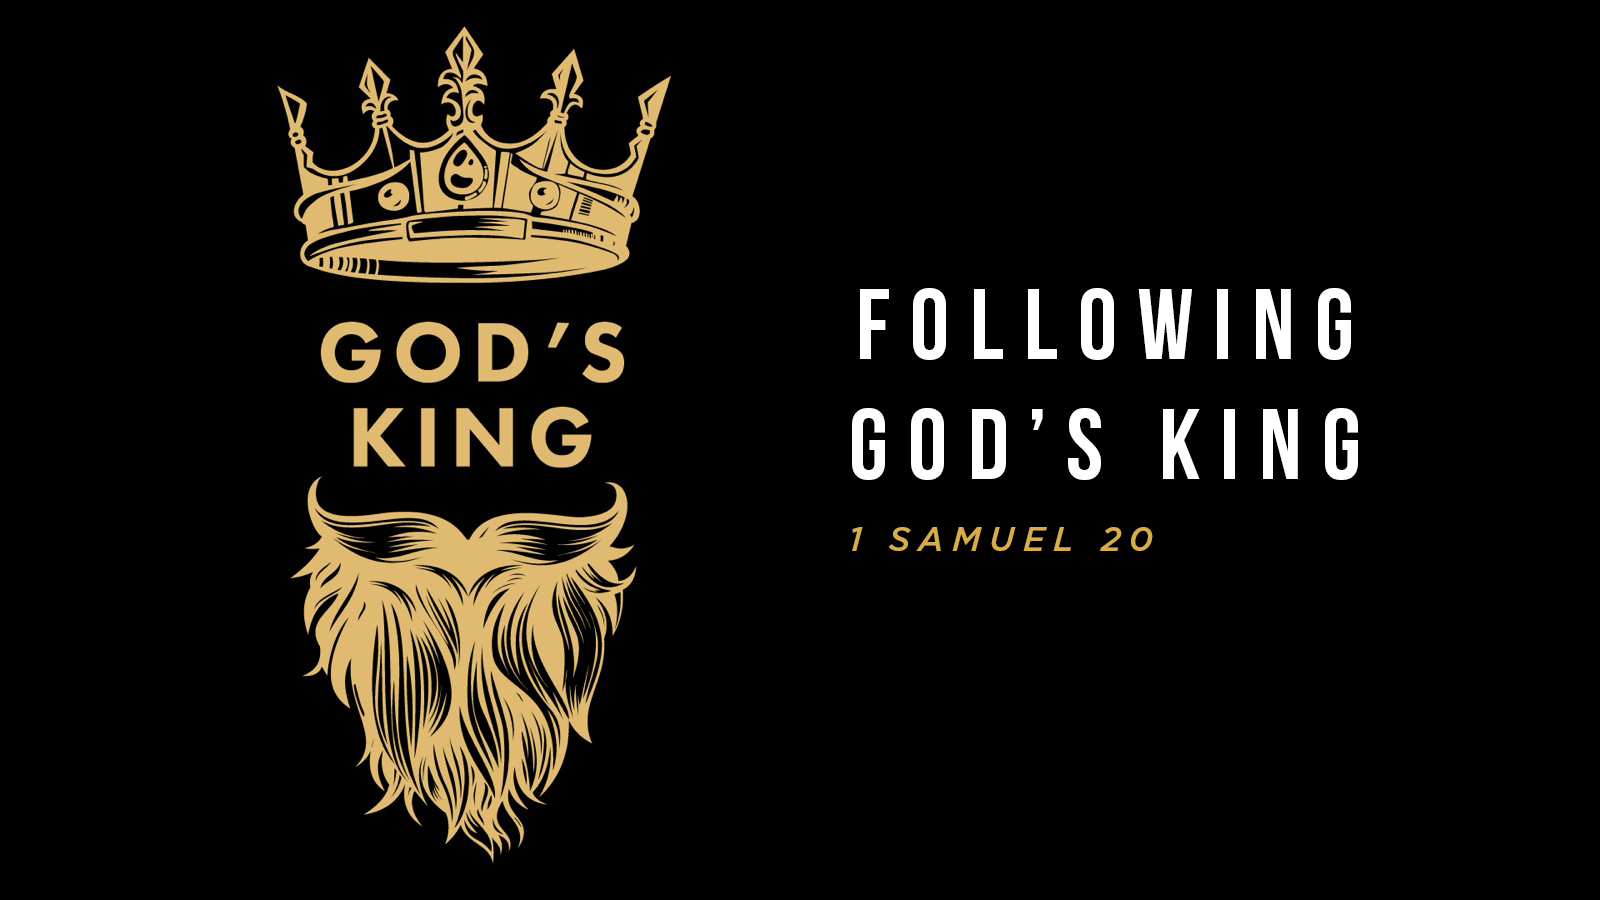 Following God's King